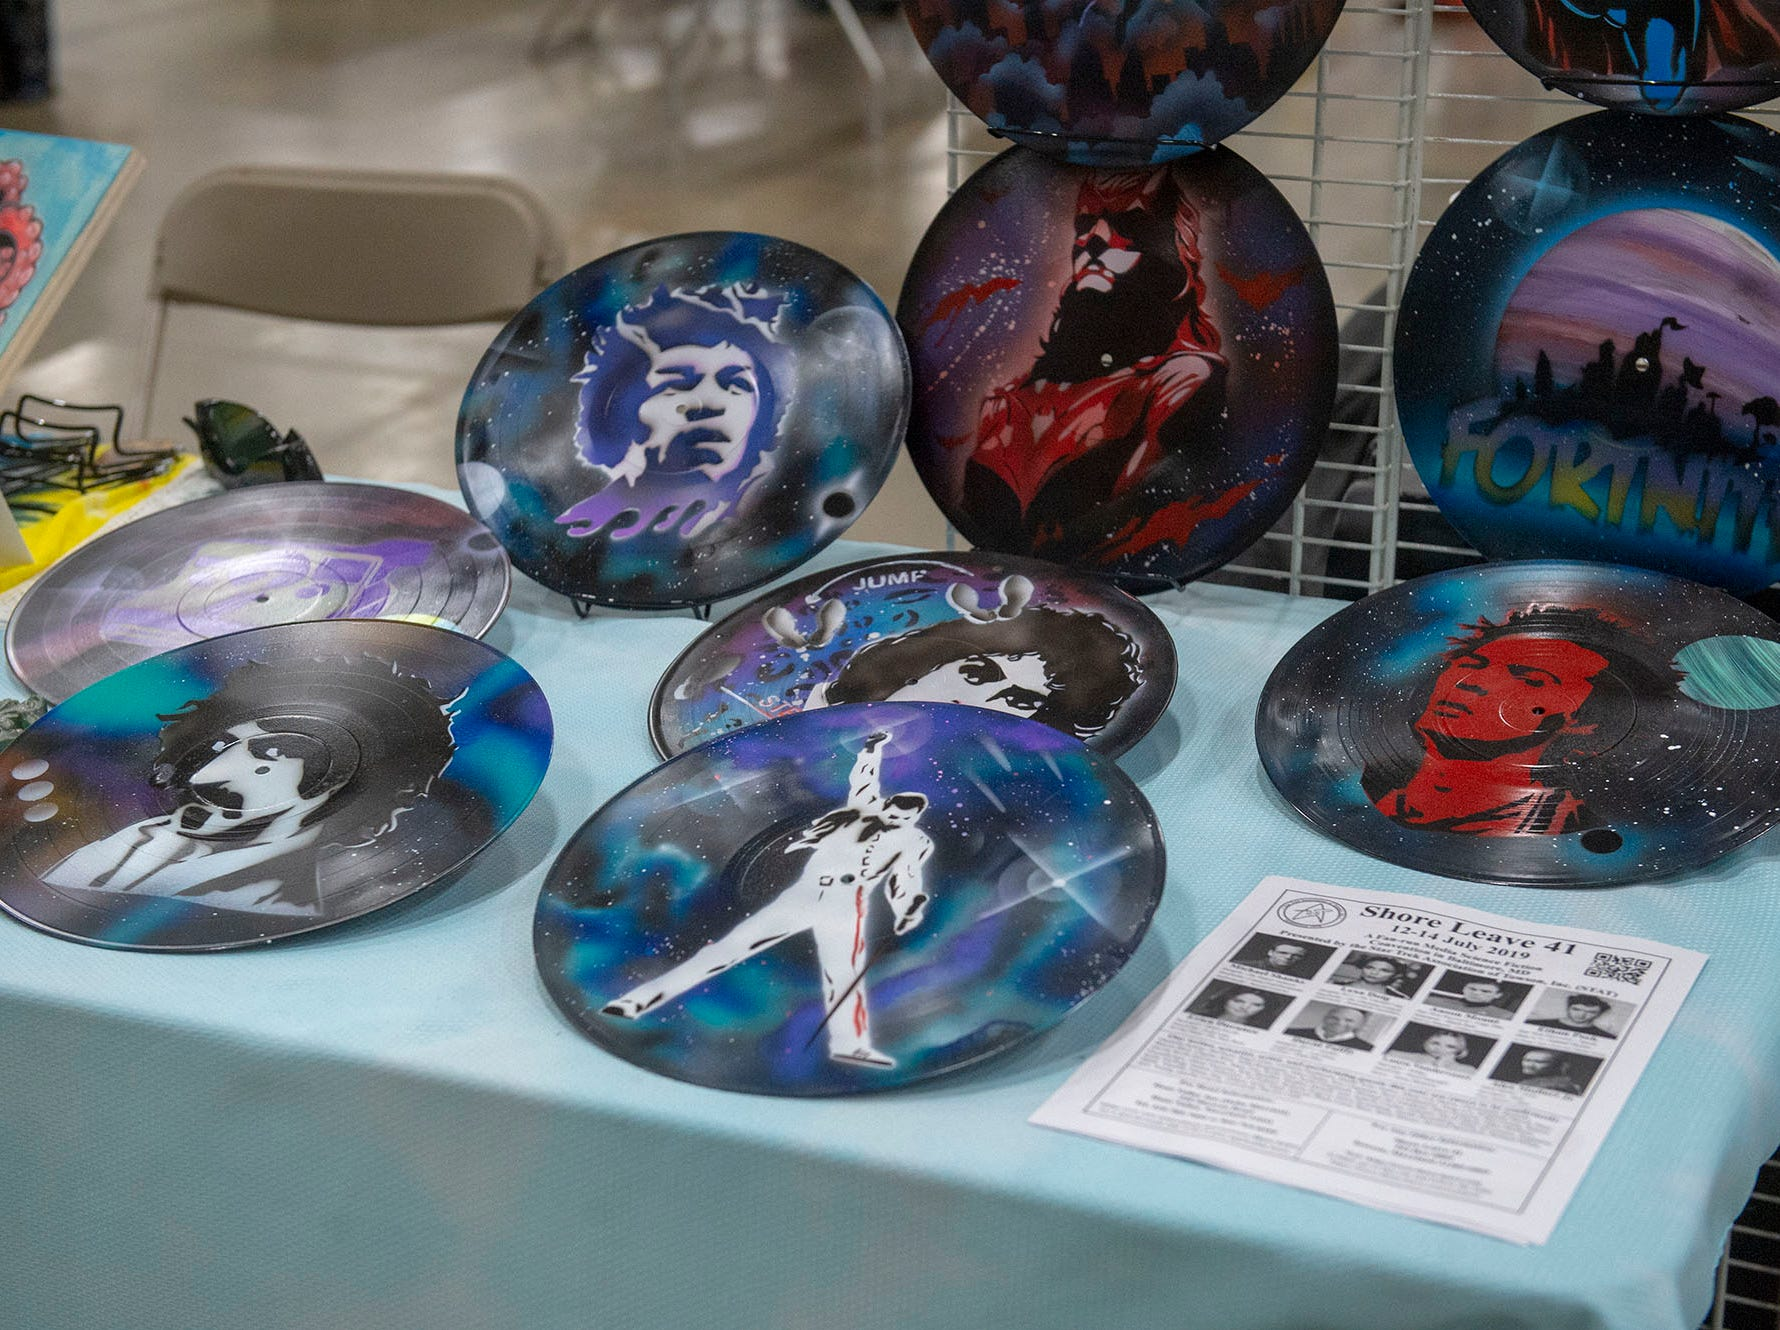 Here's an idea for those old albums and 45s you have laying around the house. Turn them into discs of art, as shown at this exhibit at the White Rose Comic Con, which runs through Sunday, March 24, 2019 at Utz Arena of the York Fairgrounds.